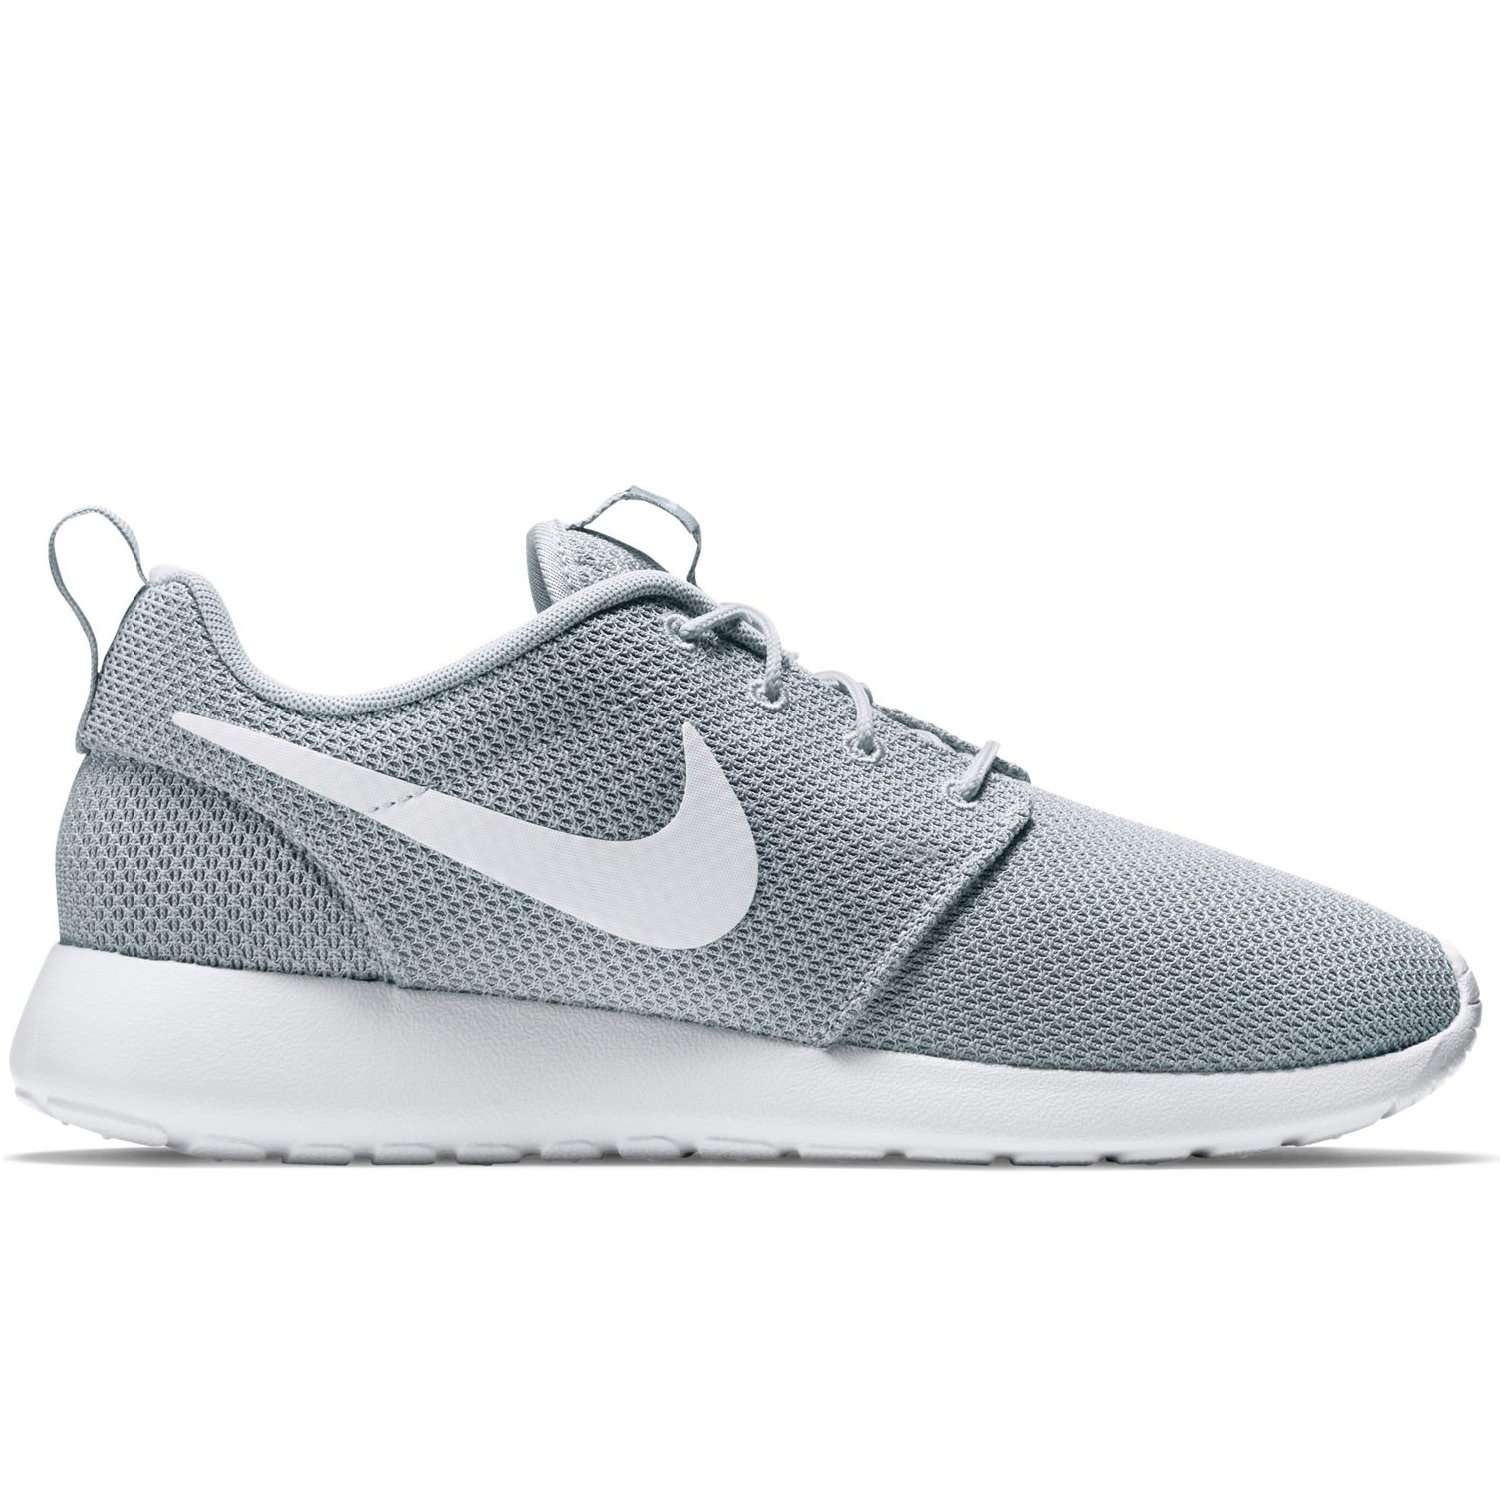 Nike Roshe One Wolf Grey 511881 023